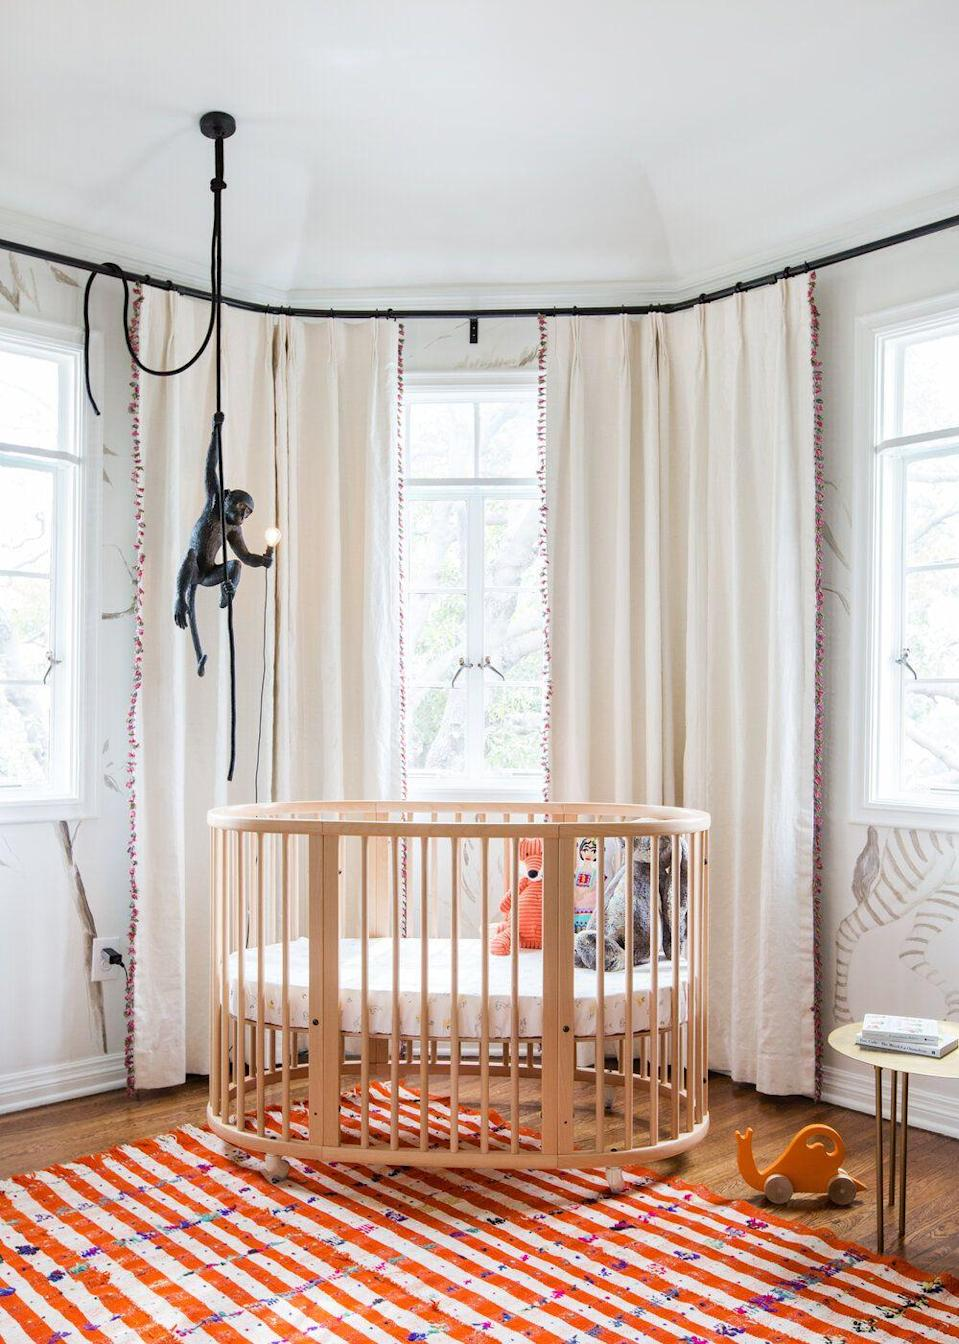 """<p>Orange is such an underrated nursery color. In this one designed by <a href=""""https://www.etcforshort.com/"""" rel=""""nofollow noopener"""" target=""""_blank"""" data-ylk=""""slk:ETC.era"""" class=""""link rapid-noclick-resp"""">ETC.era</a>, the bold rug sets the tone for an energizing, fun, and sweet space. Keep things soft and cozy with a warm cream as opposed to a cool white. And how could we not mention that awesome monkey pendant? </p>"""